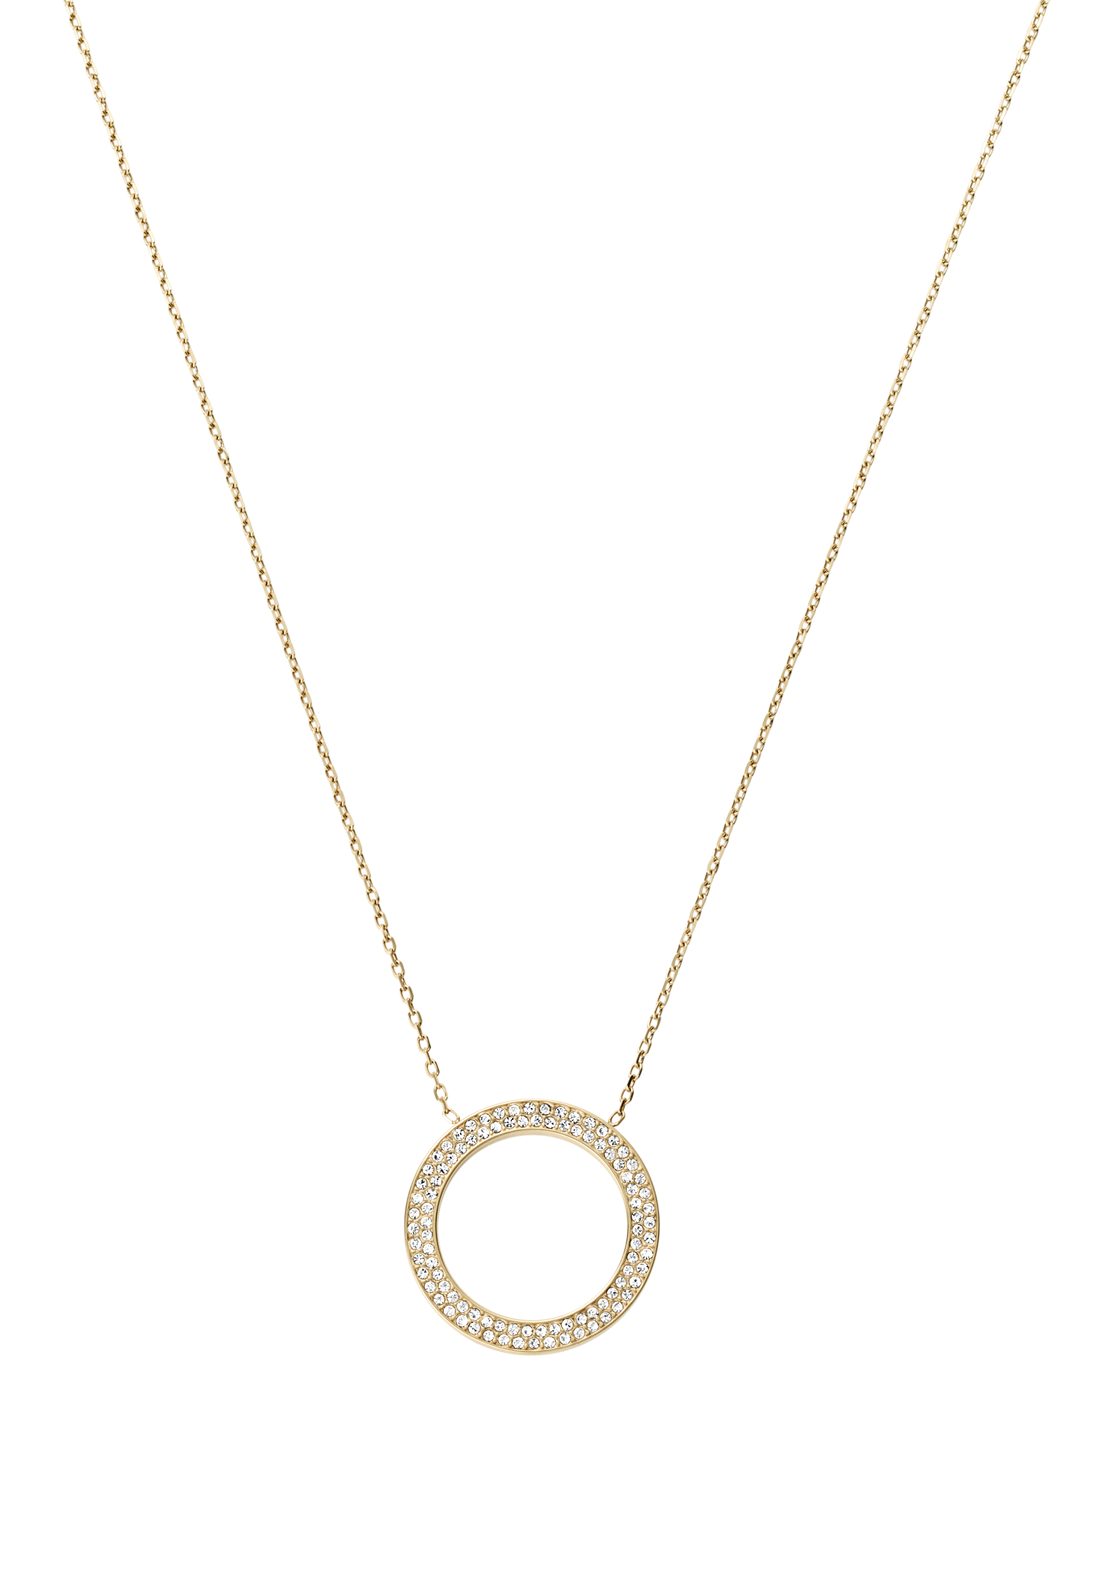 Michael Kors Womens Pave Circle Necklace, Gold